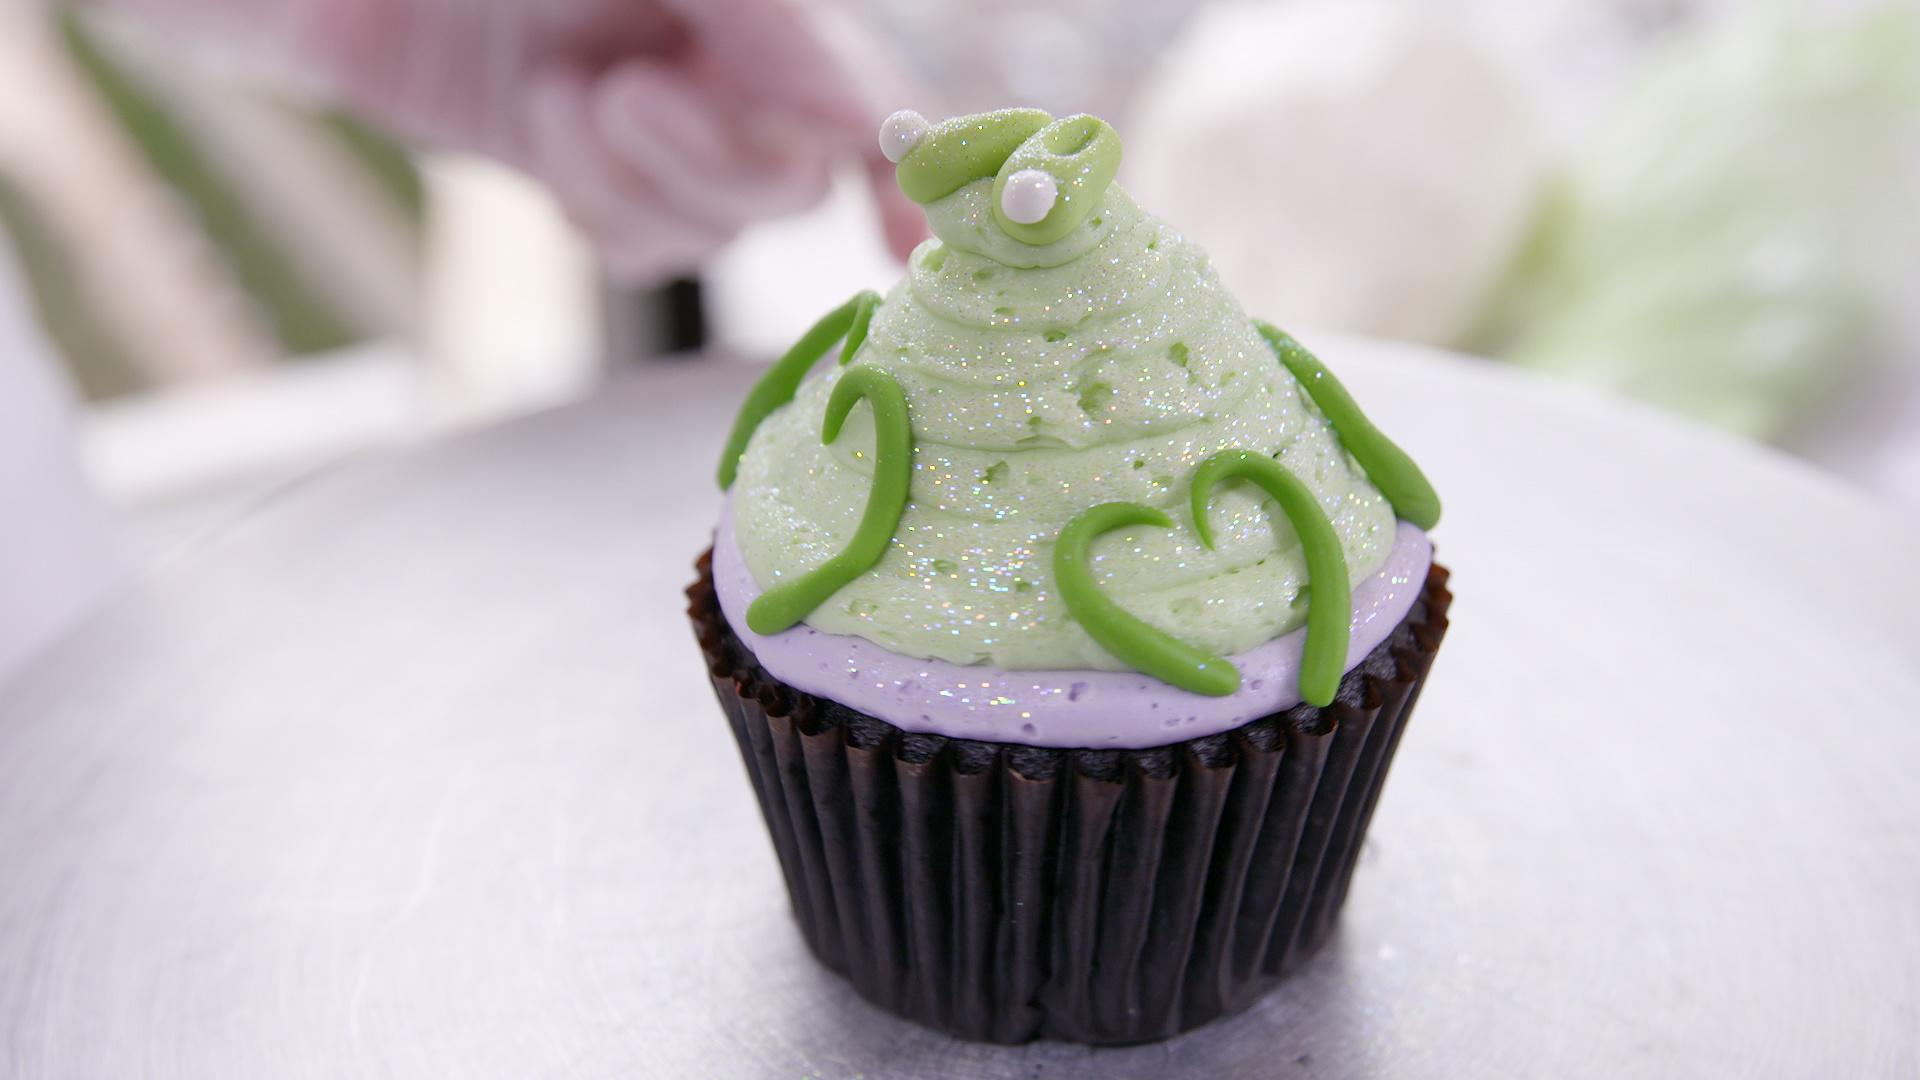 This Tinker Bell Cupcake Would Make Tink Herself Crack a Smile